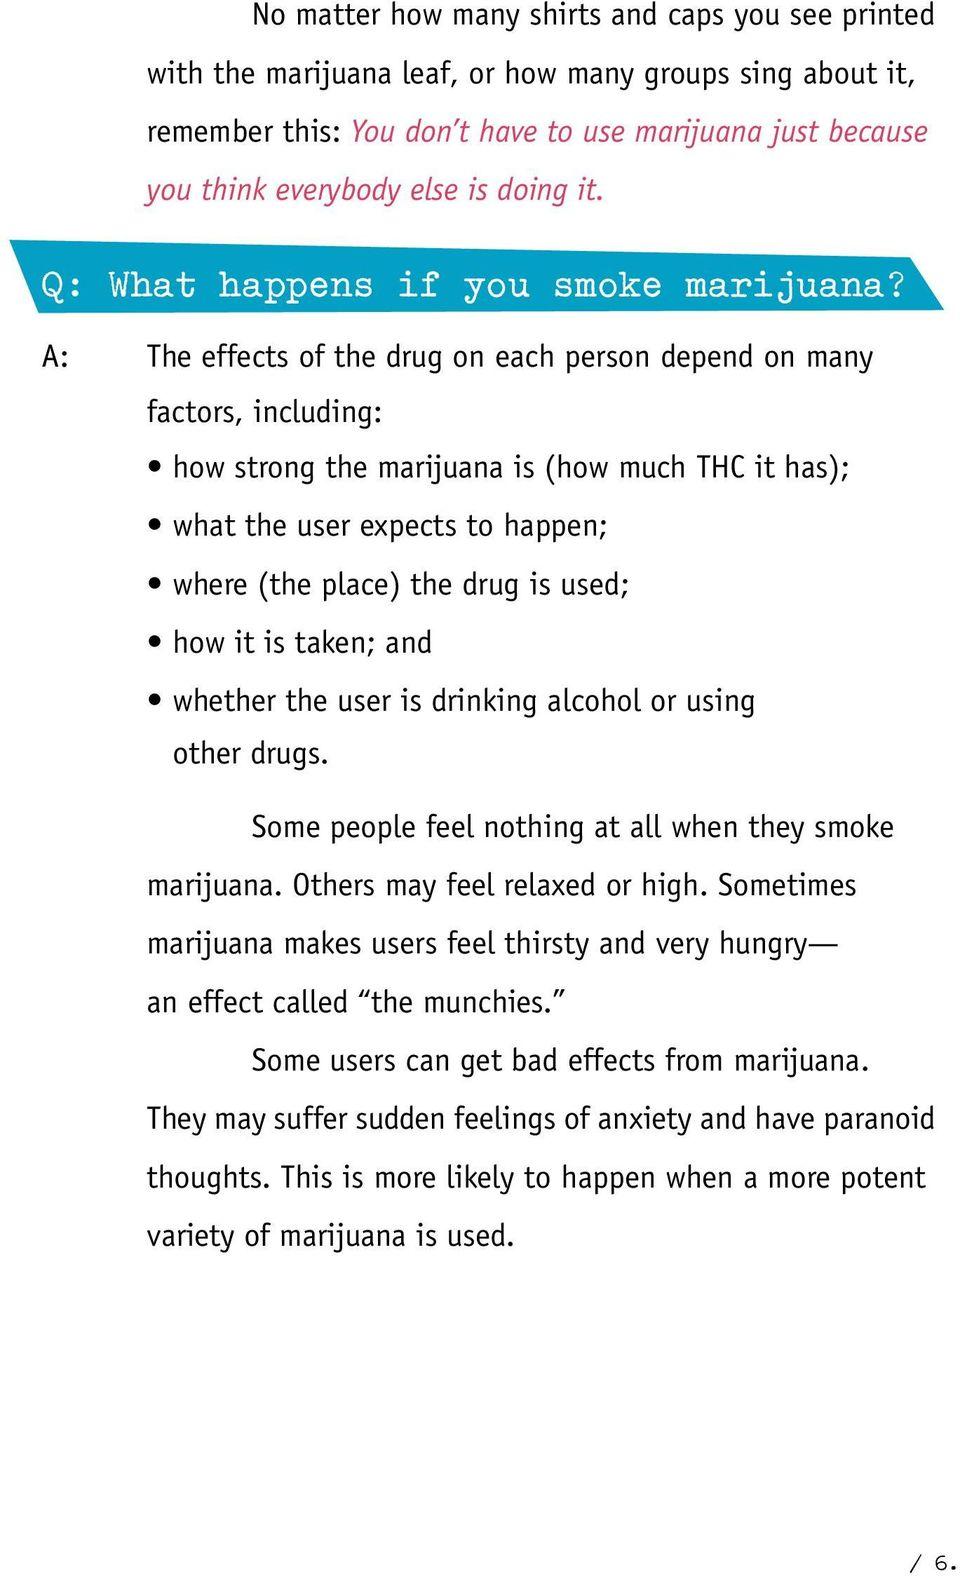 A: The effects of the drug on each person depend on many factors, including: how strong the marijuana is (how much THC it has); what the user expects to happen; where (the place) the drug is used;